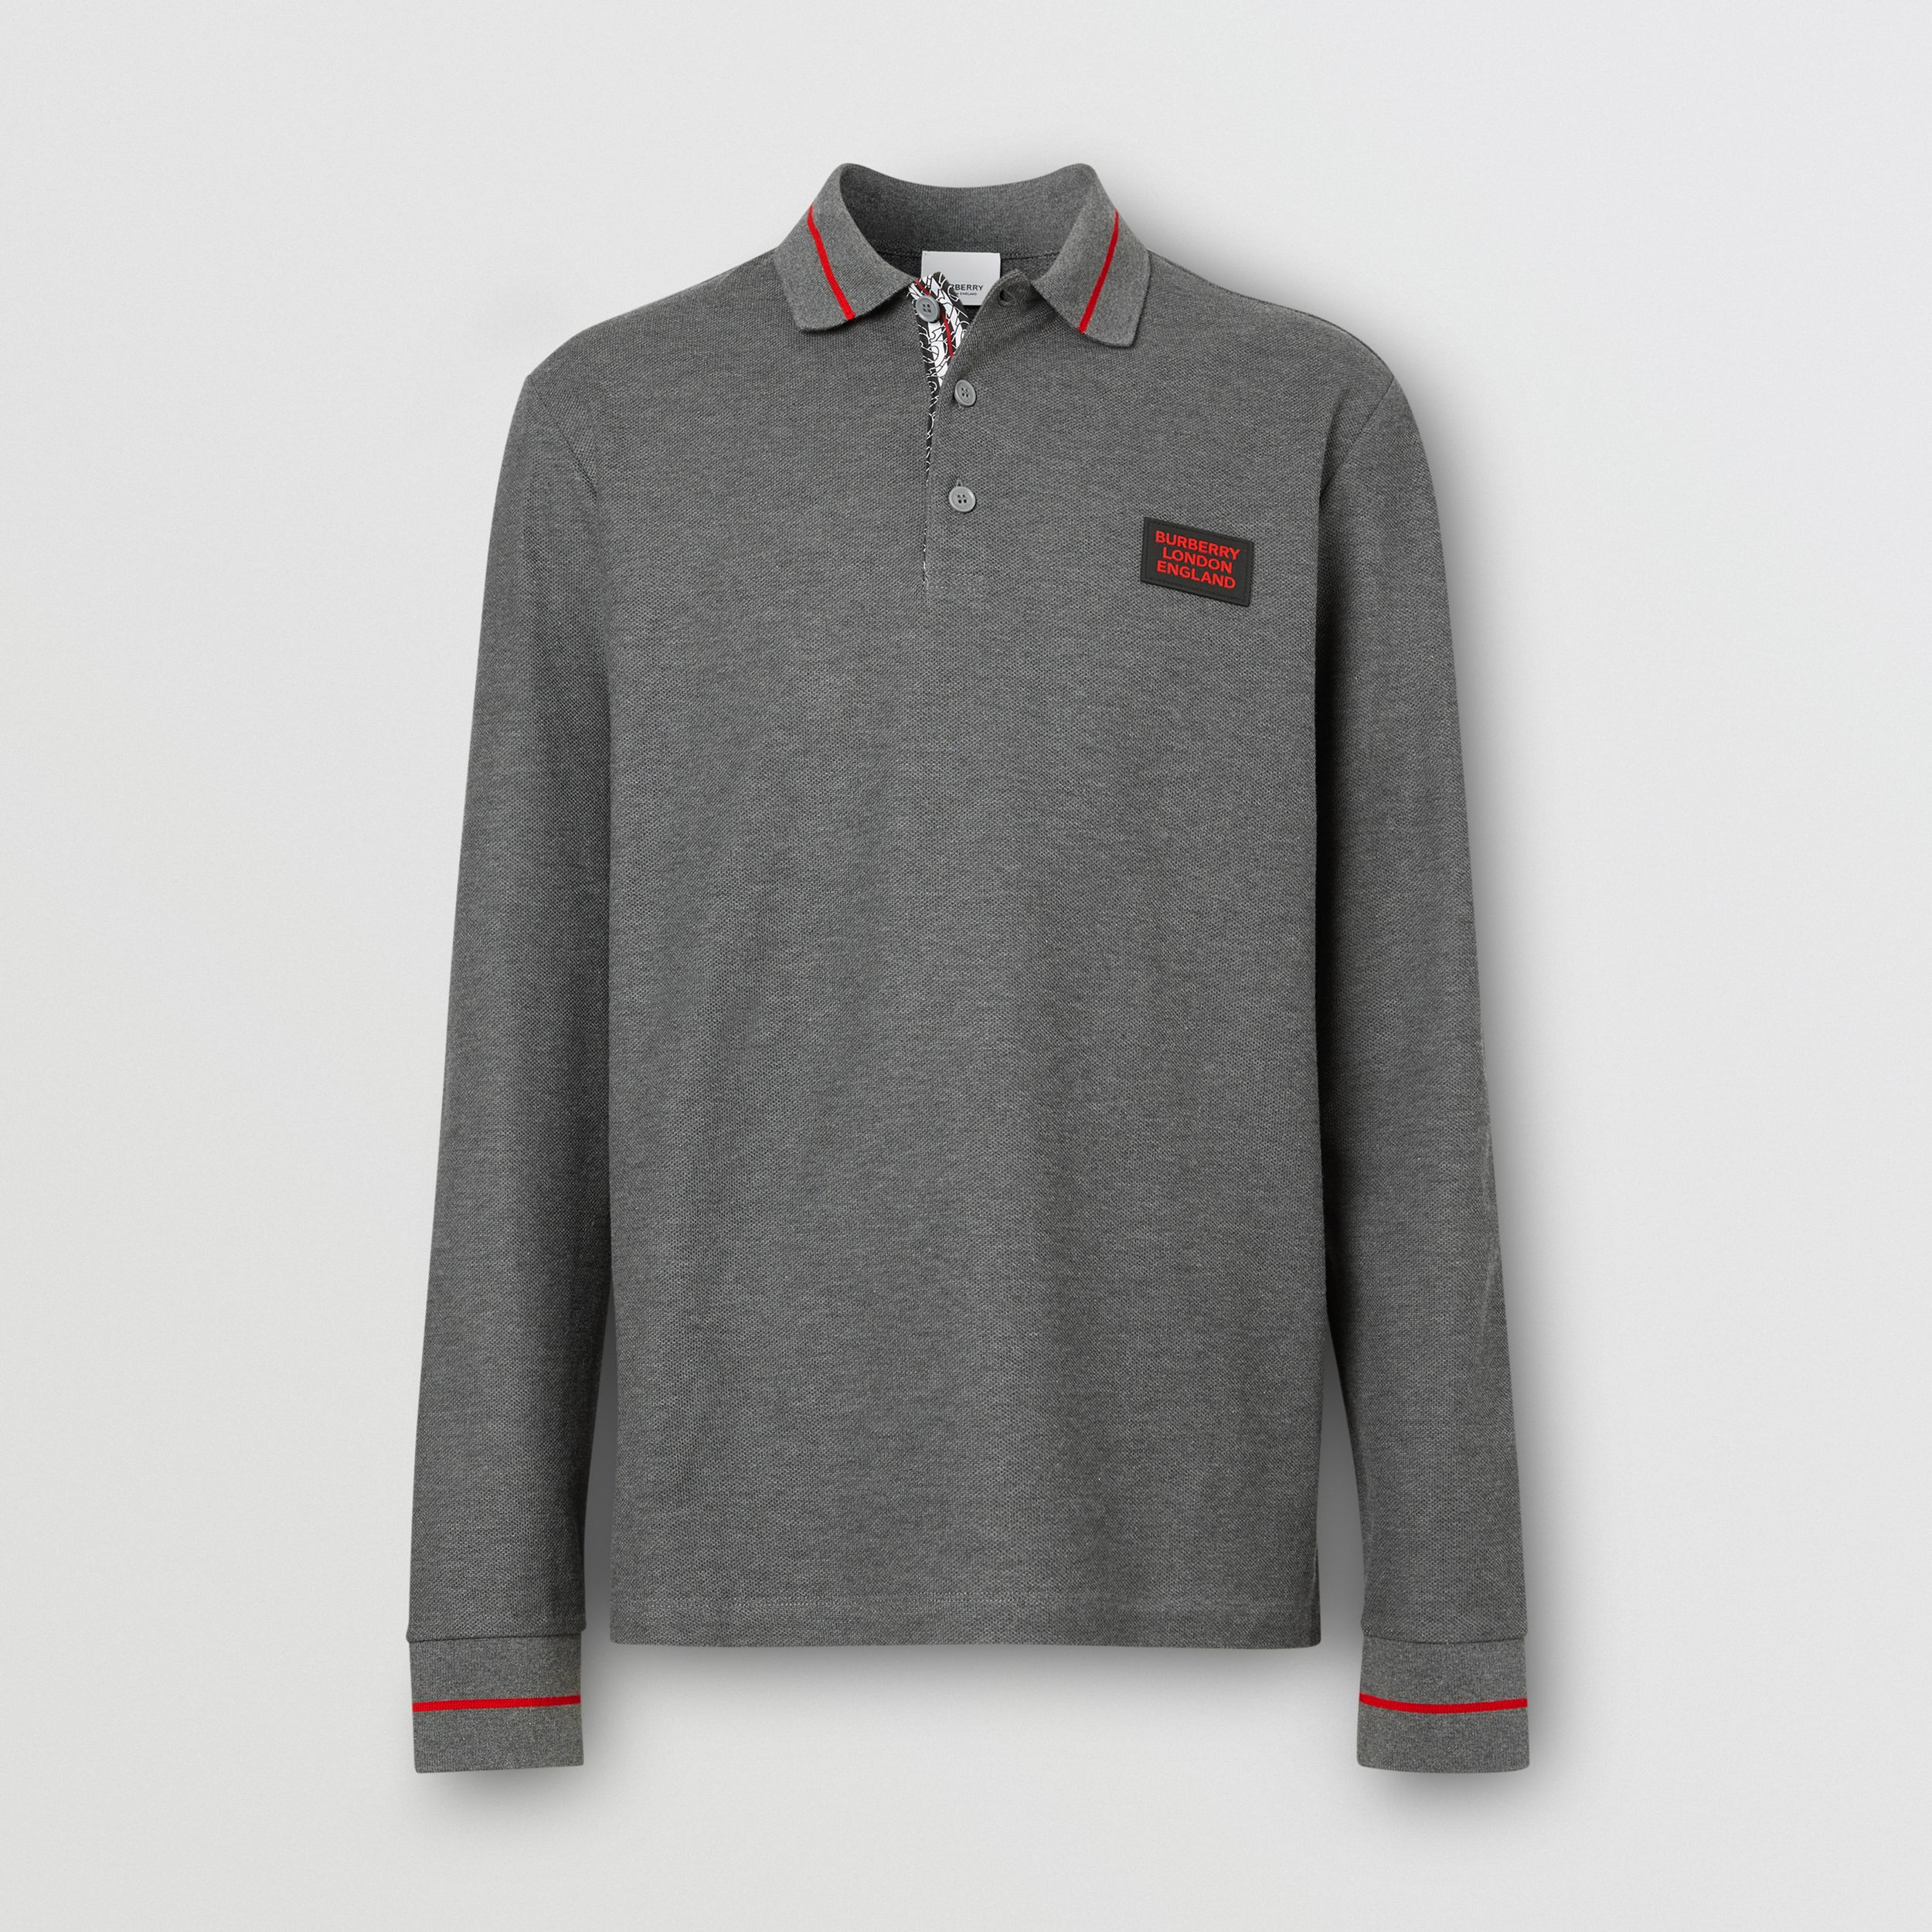 Long-sleeve Logo Appliqué Cotton Polo Shirt in Mid Grey Melange - Men | Burberry - 4